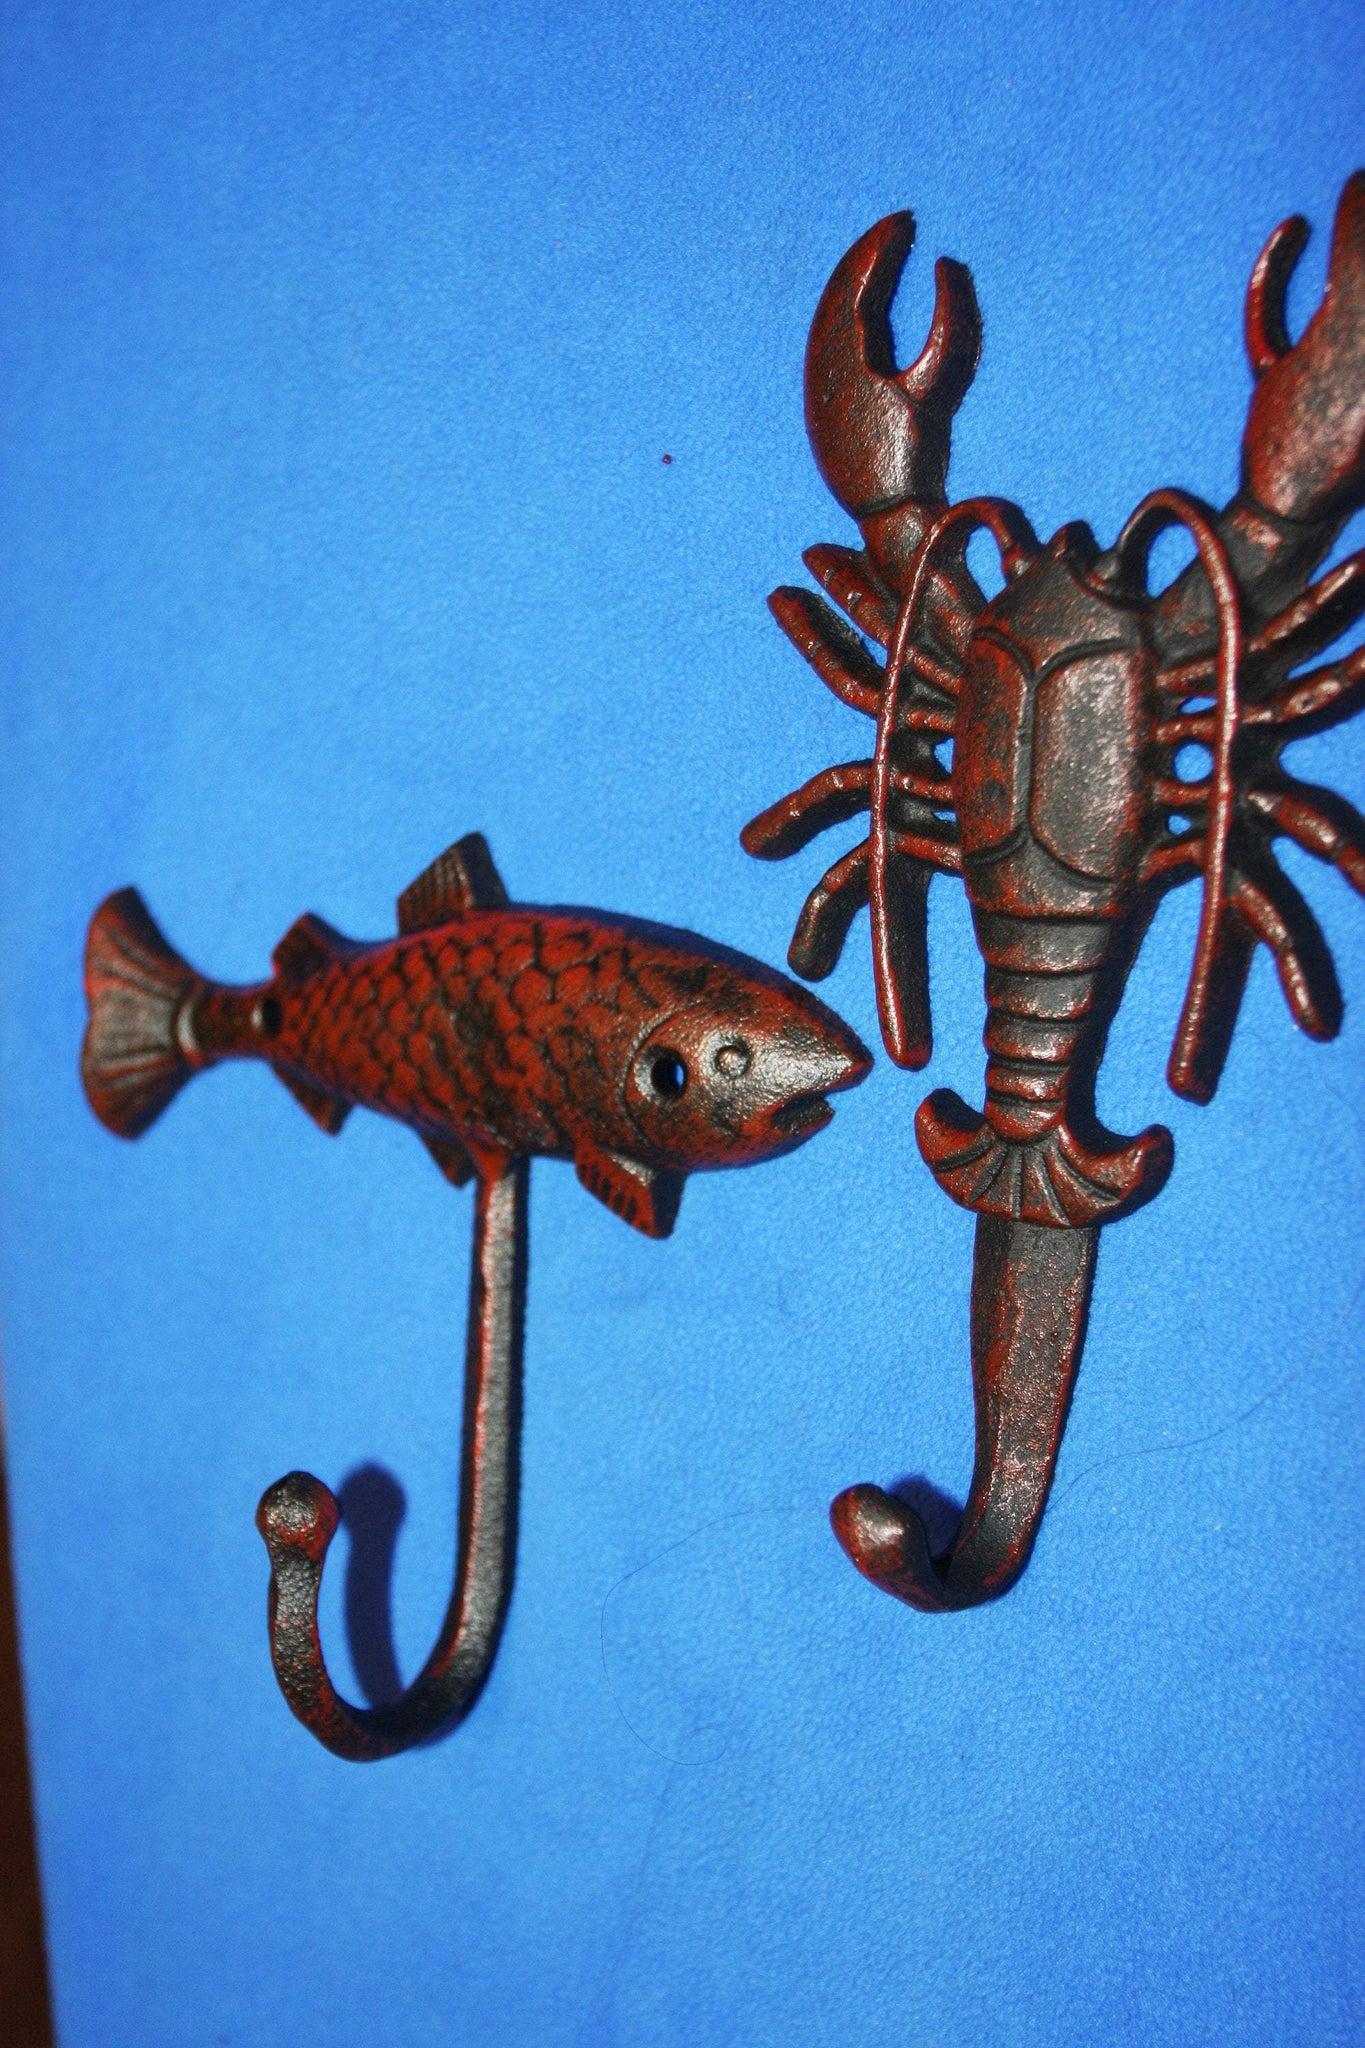 2) Vintage Look Seafood Towel Hooks Red Bronze Look Cast Iron, Lobster Fish Wall Hooks